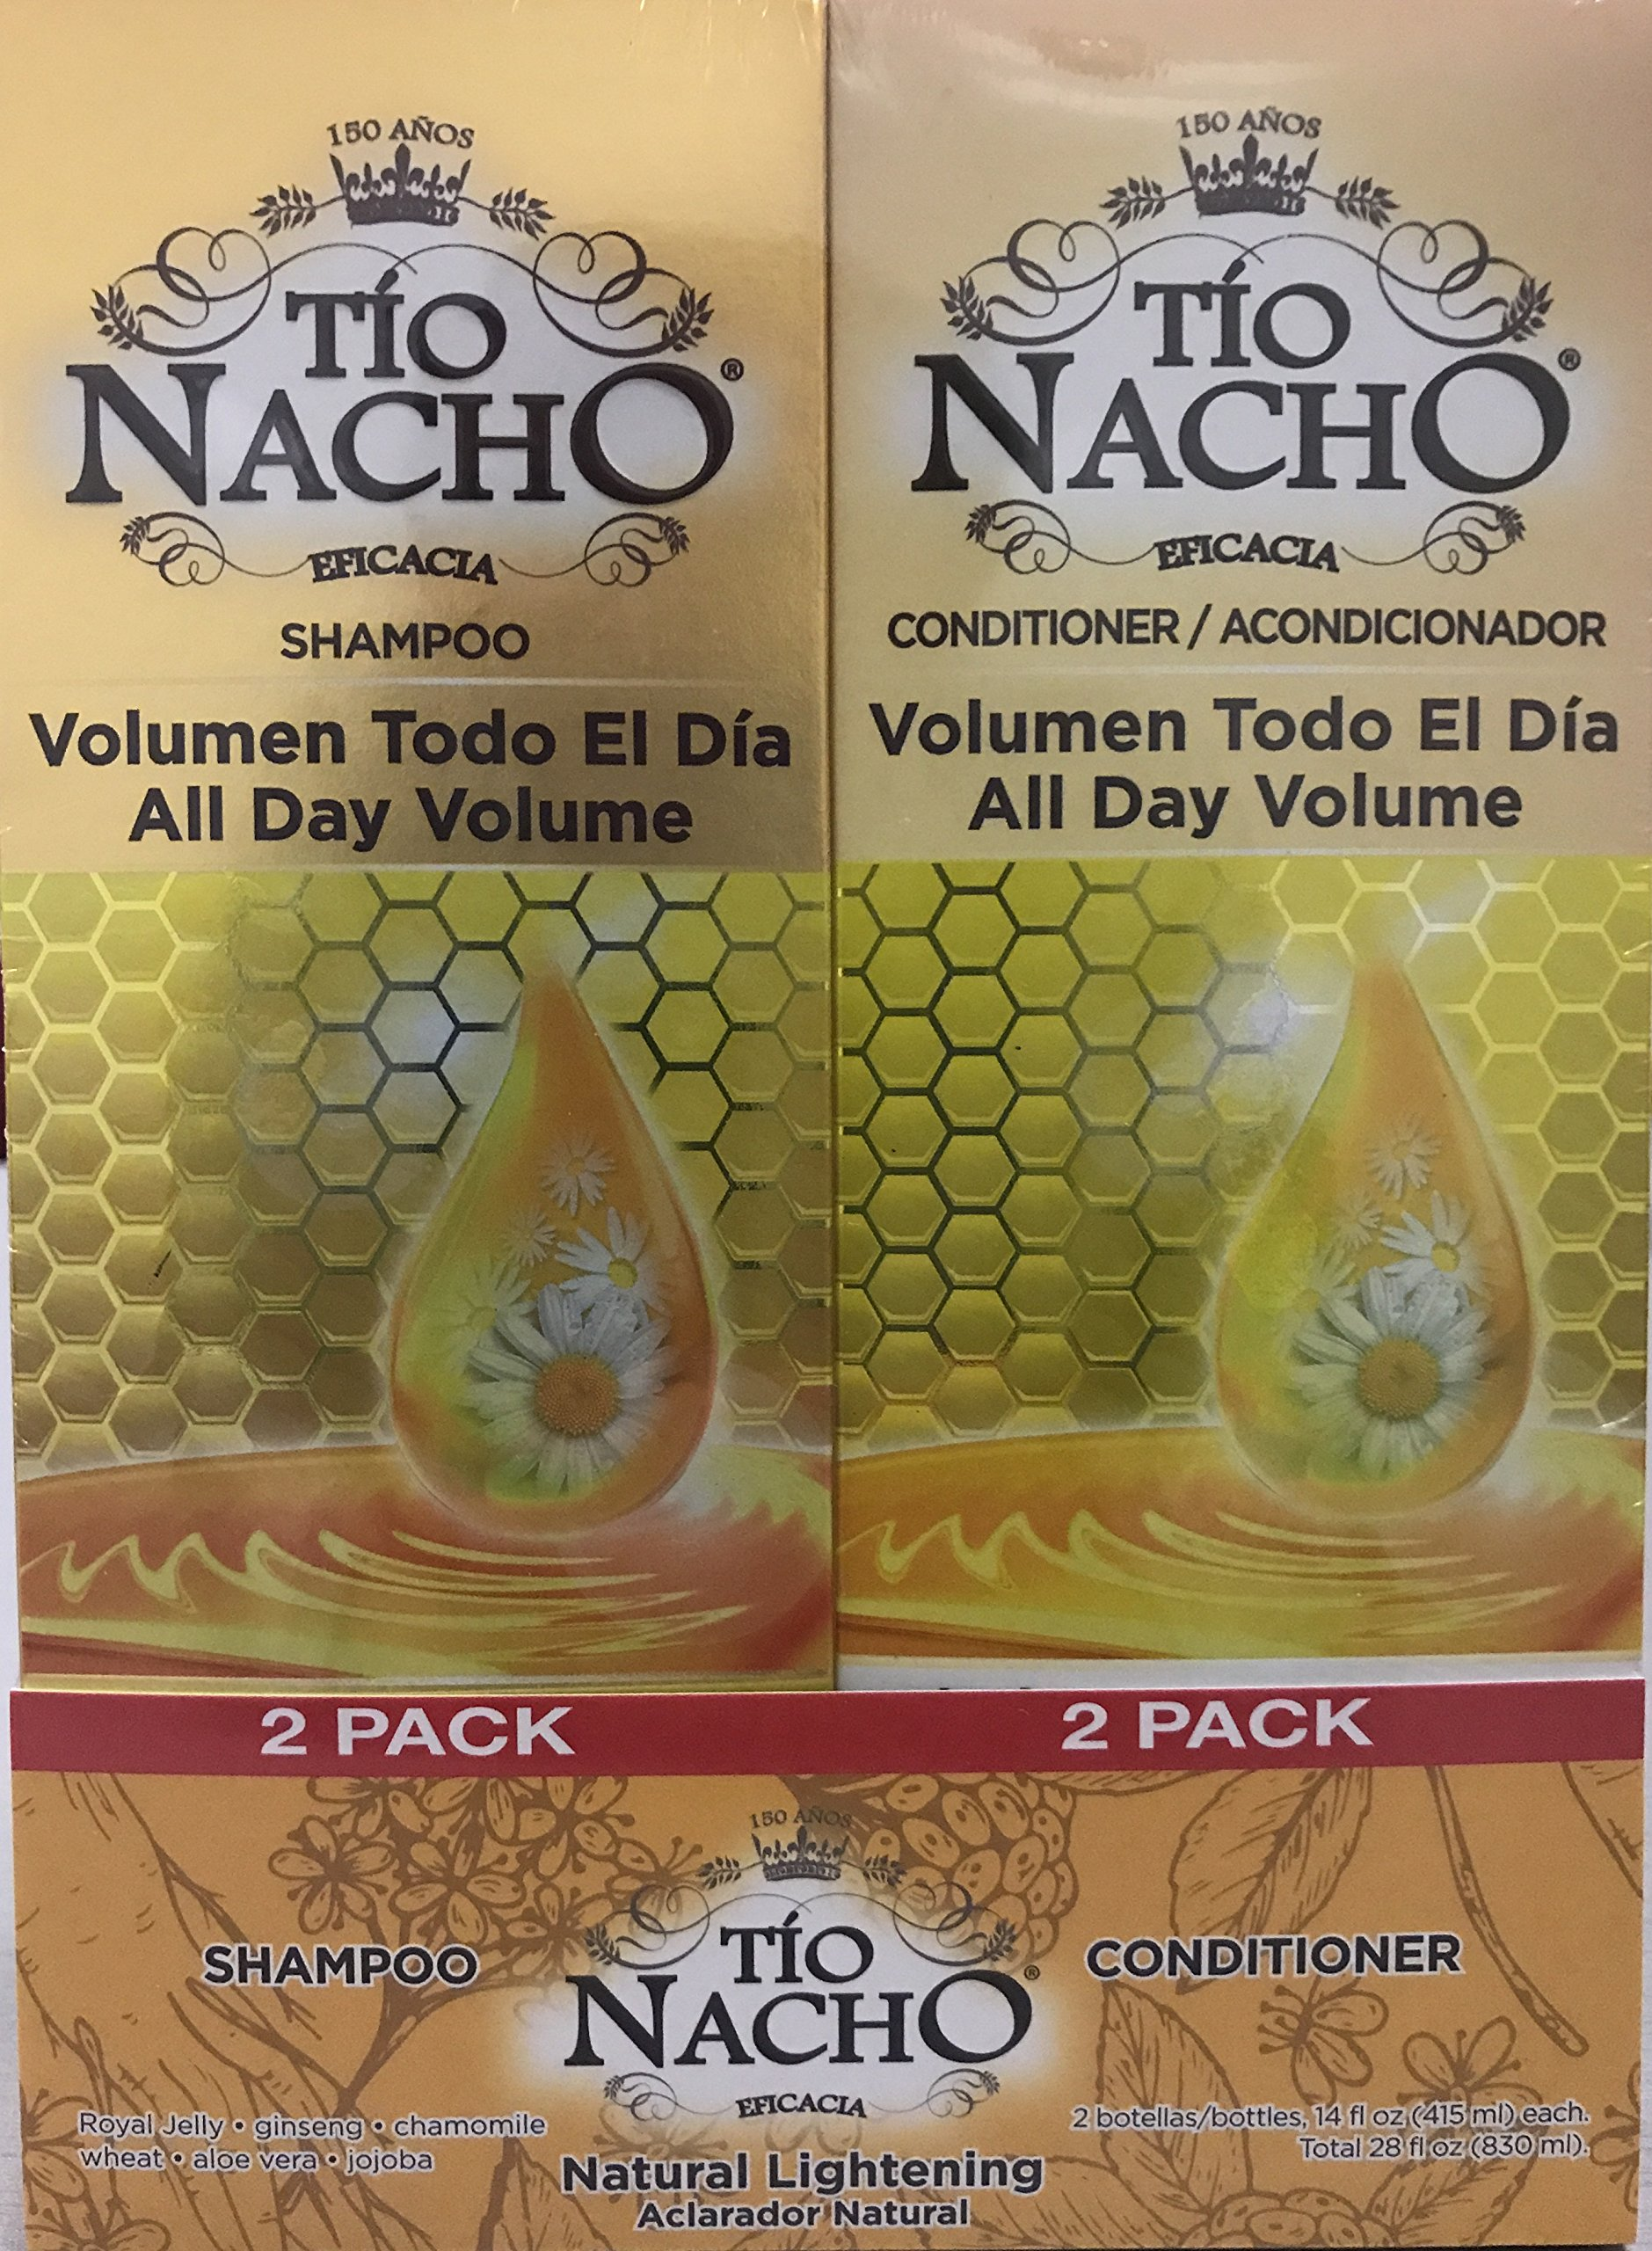 TIO NACHO Natural Lightening Shampoo and Conditioner, Twin Pack (2 Pack, 14 fl. oz. Each) by Tio Nacho